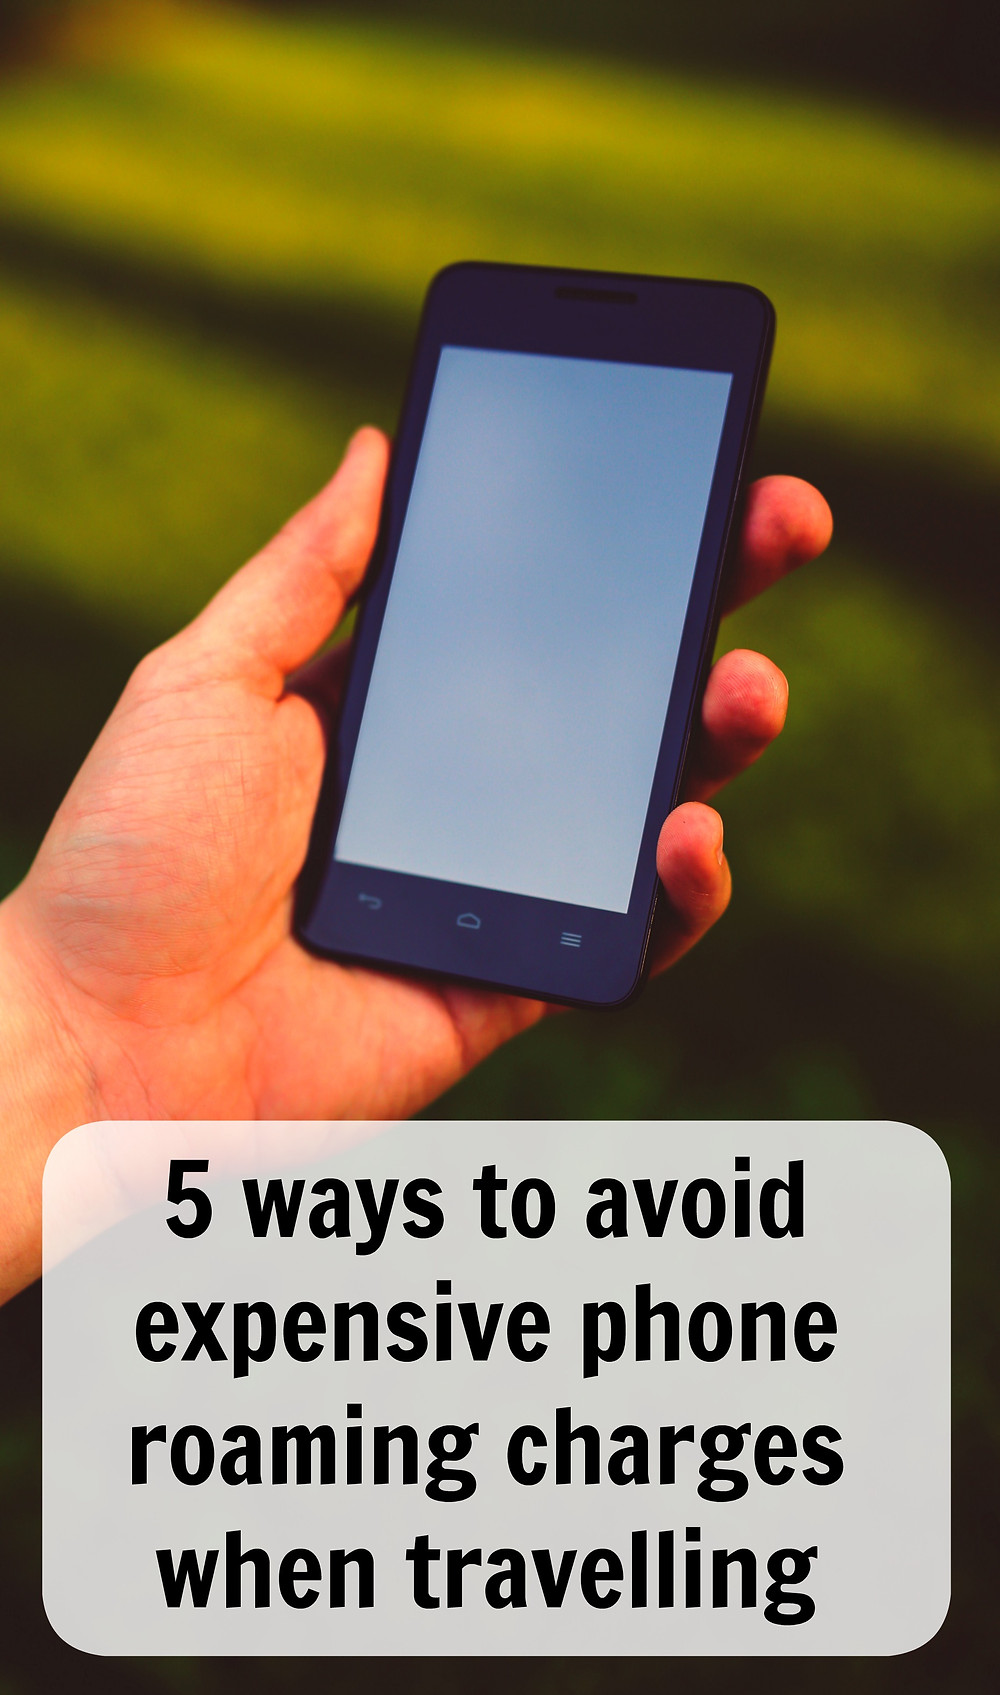 5 ways to avoid expensive roaming charges when travelling